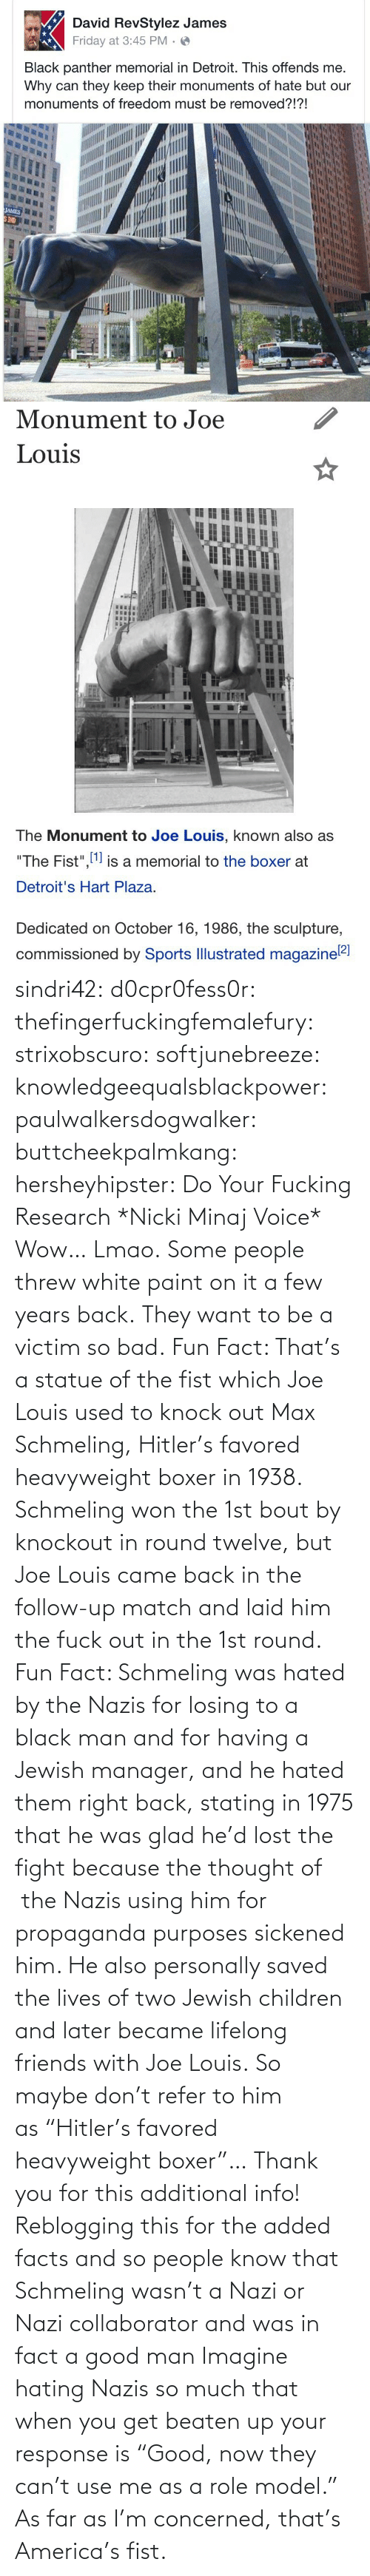 "people: sindri42:  d0cpr0fess0r:  thefingerfuckingfemalefury:  strixobscuro:  softjunebreeze:  knowledgeequalsblackpower:  paulwalkersdogwalker:   buttcheekpalmkang:   hersheyhipster:  Do Your Fucking Research *Nicki Minaj Voice*    Wow… Lmao.   Some people threw white paint on it a few years back.   They want to be a victim so bad.  Fun Fact: That's a statue of the fist which Joe Louis used to knock out Max Schmeling, Hitler's favored heavyweight boxer in 1938. Schmeling won the 1st bout by knockout in round twelve, but Joe Louis came back in the follow-up match and laid him the fuck out in the 1st round.  Fun Fact: Schmeling was hated by the Nazis for losing to a black man and for having a Jewish manager, and he hated them right back, stating in 1975 that he was glad he'd lost the fight because the thought of  the Nazis using him for propaganda purposes sickened him. He also personally saved the lives of two Jewish children and later became lifelong friends with Joe Louis. So maybe don't refer to him as ""Hitler's favored heavyweight boxer""…  Thank you for this additional info! Reblogging this for the added facts and so people know that Schmeling wasn't a Nazi or Nazi collaborator and was in fact a good man   Imagine hating Nazis so much that when you get beaten up your response is ""Good, now they can't use me as a role model.""  As far as I'm concerned, that's America's fist."